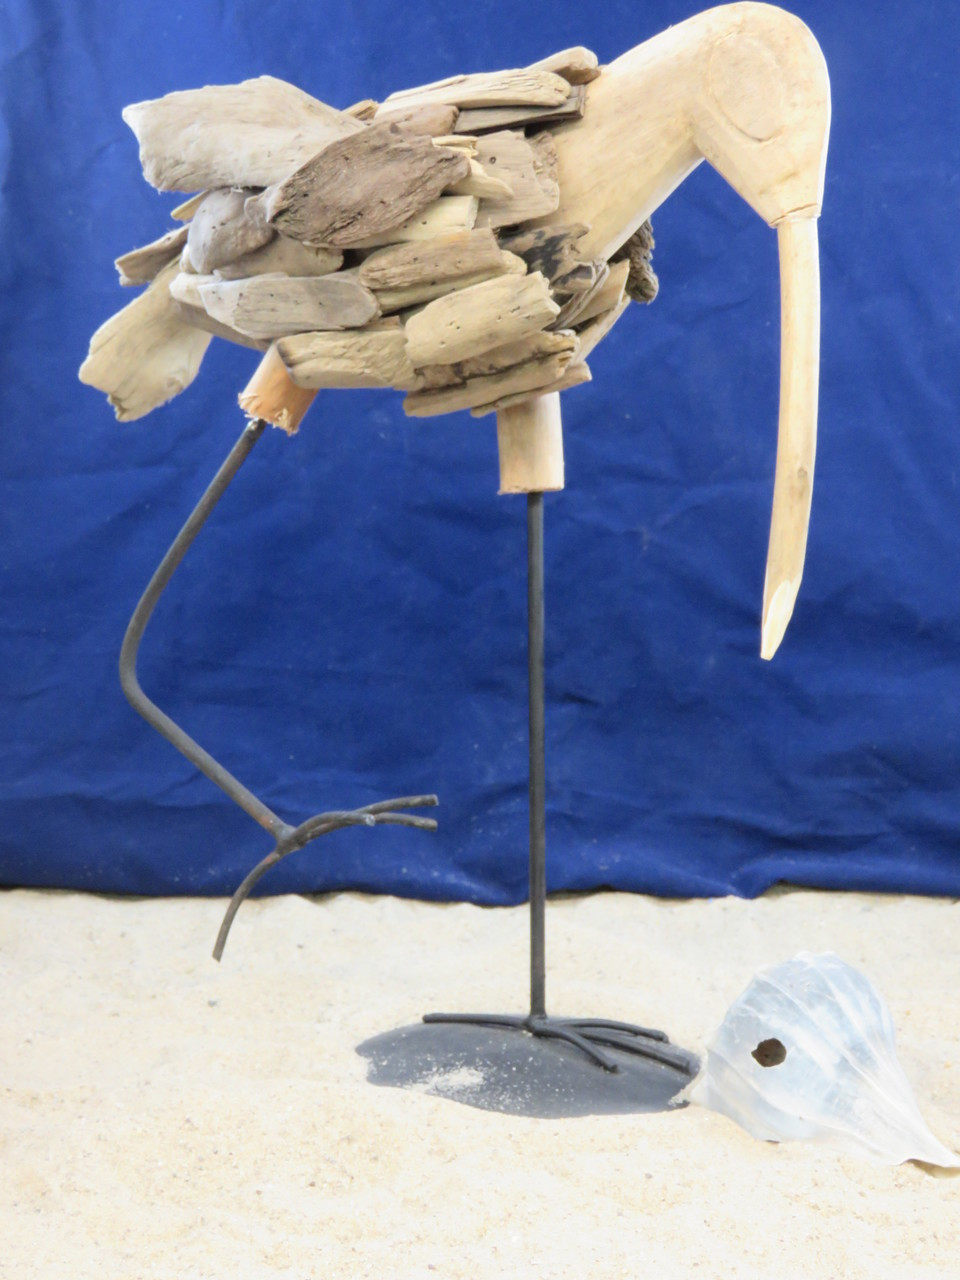 Driftwood Shorebird Sandpiper Egret Heron Sculpture Weathered Wood Coastal Beach Decor